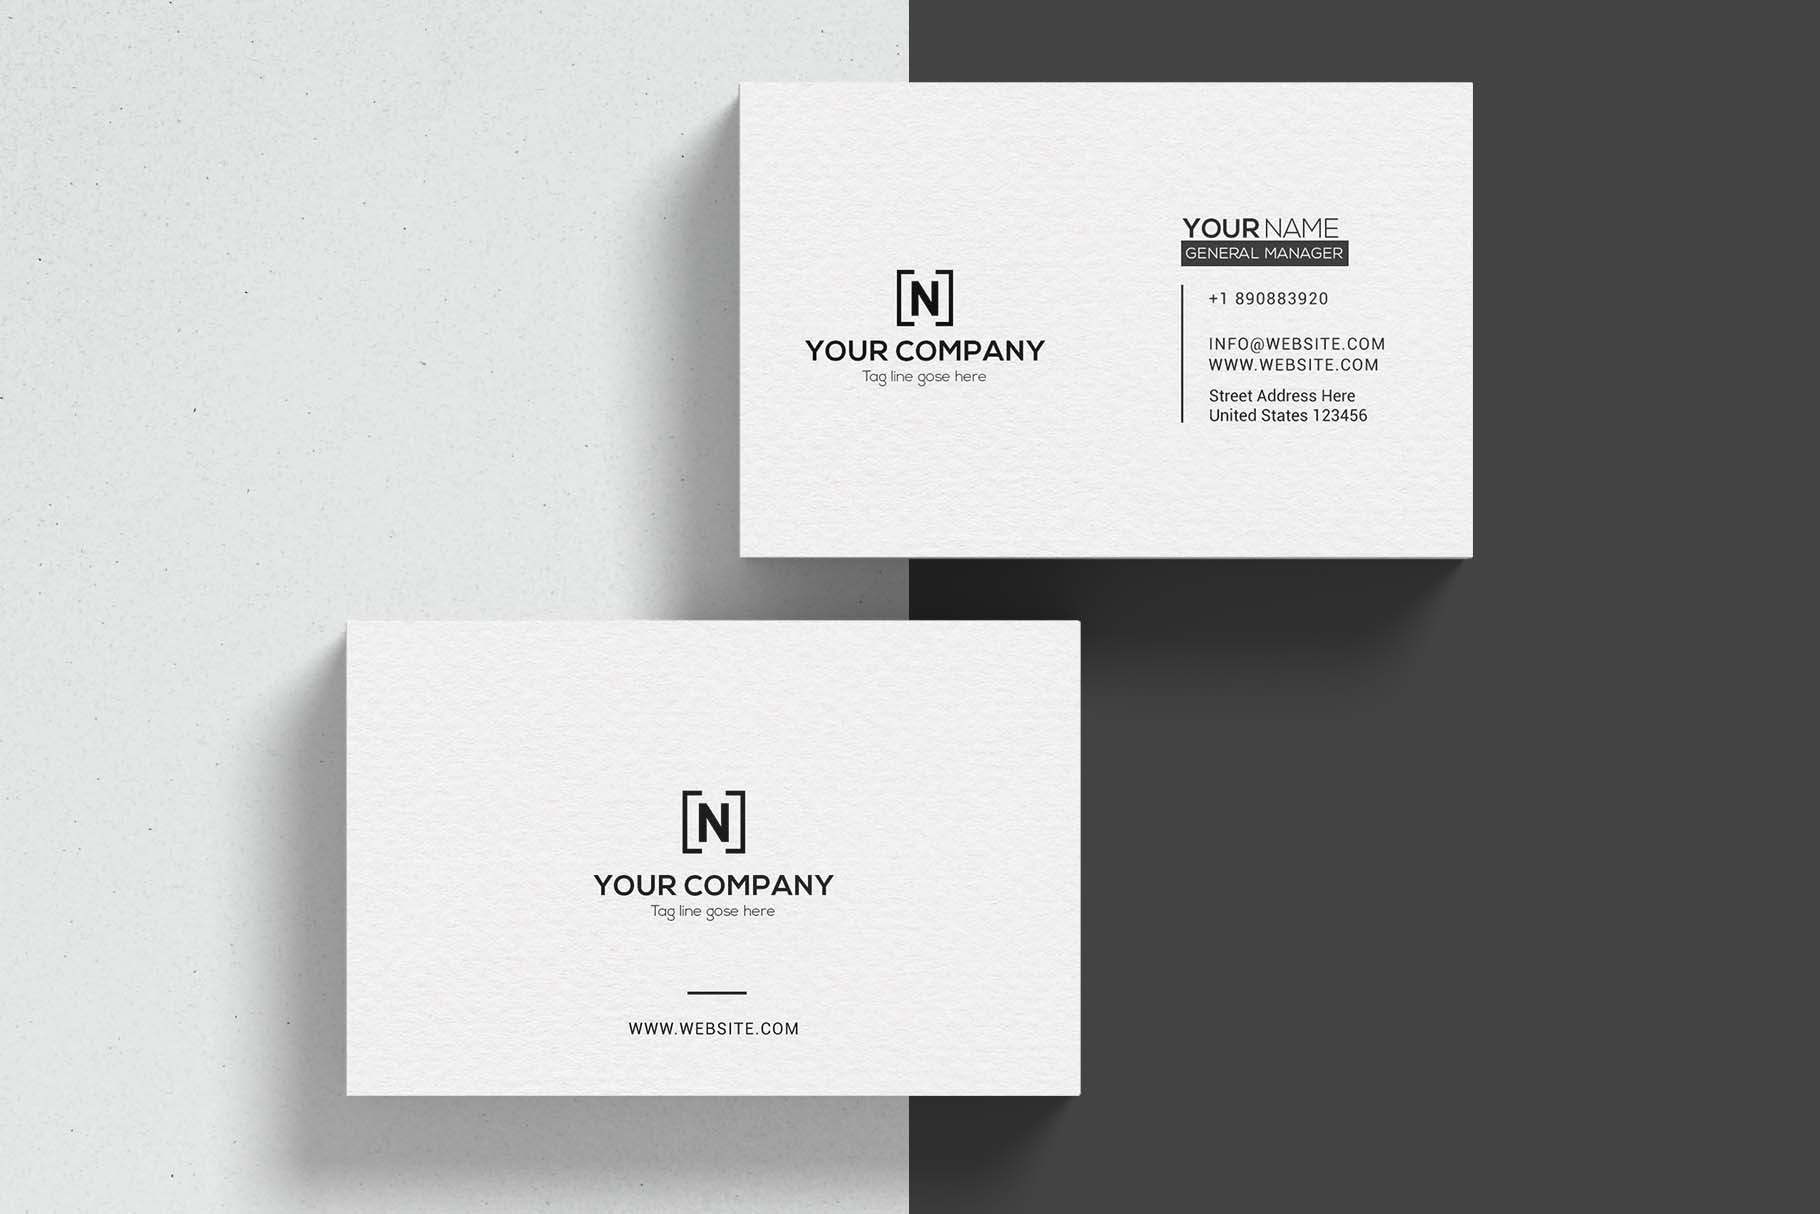 Minimal Business Cards example image 2